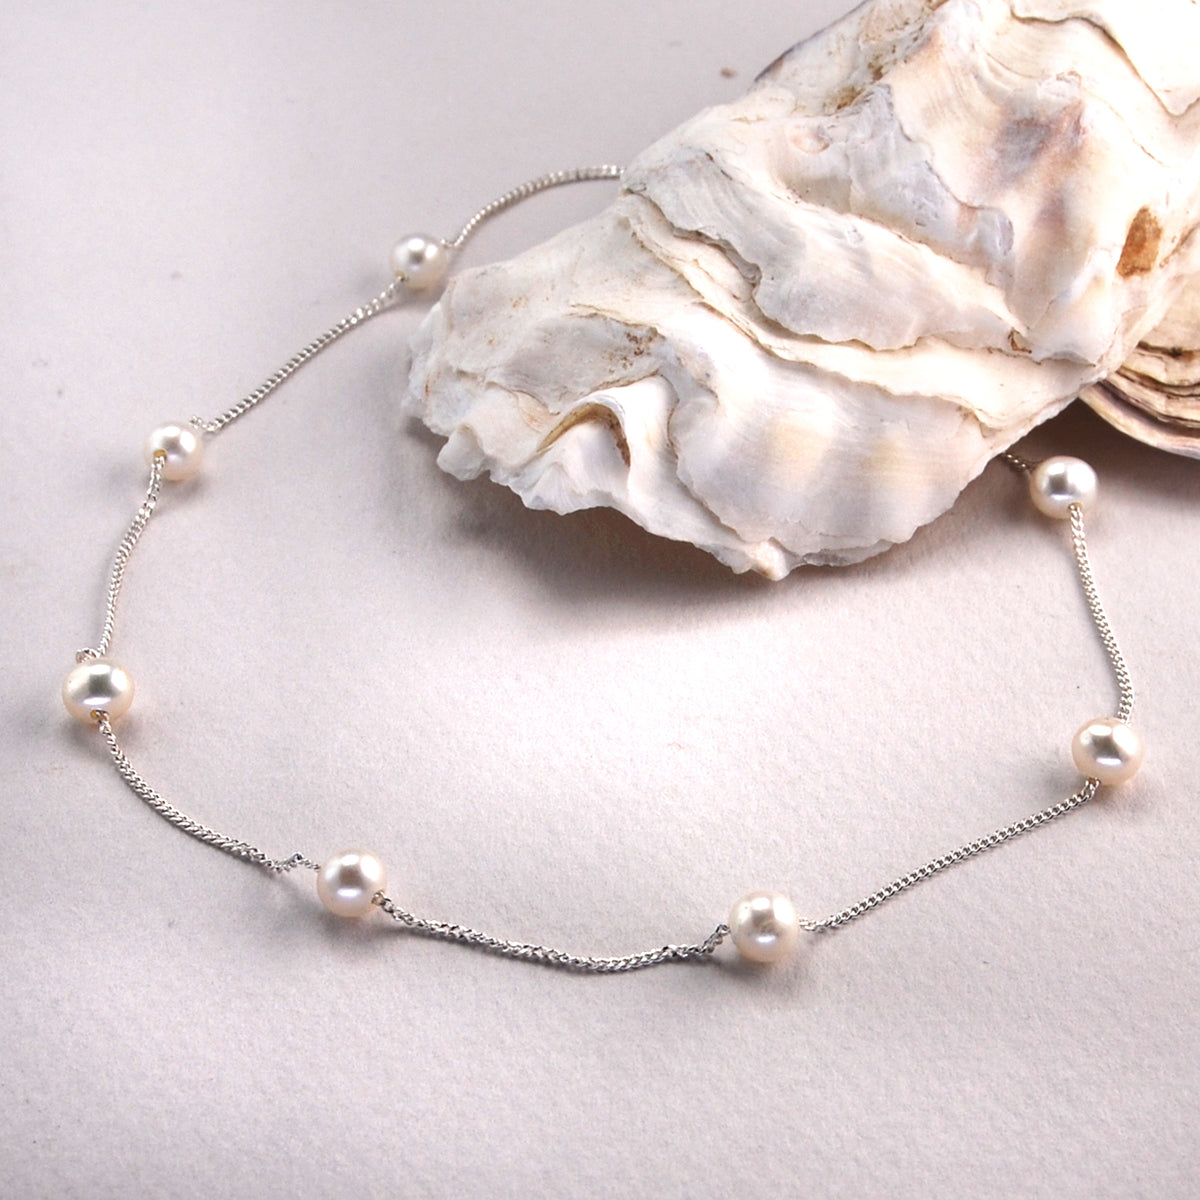 Round Large Freshwater Pearl Spacer Necklace on shimmering Silver Chain